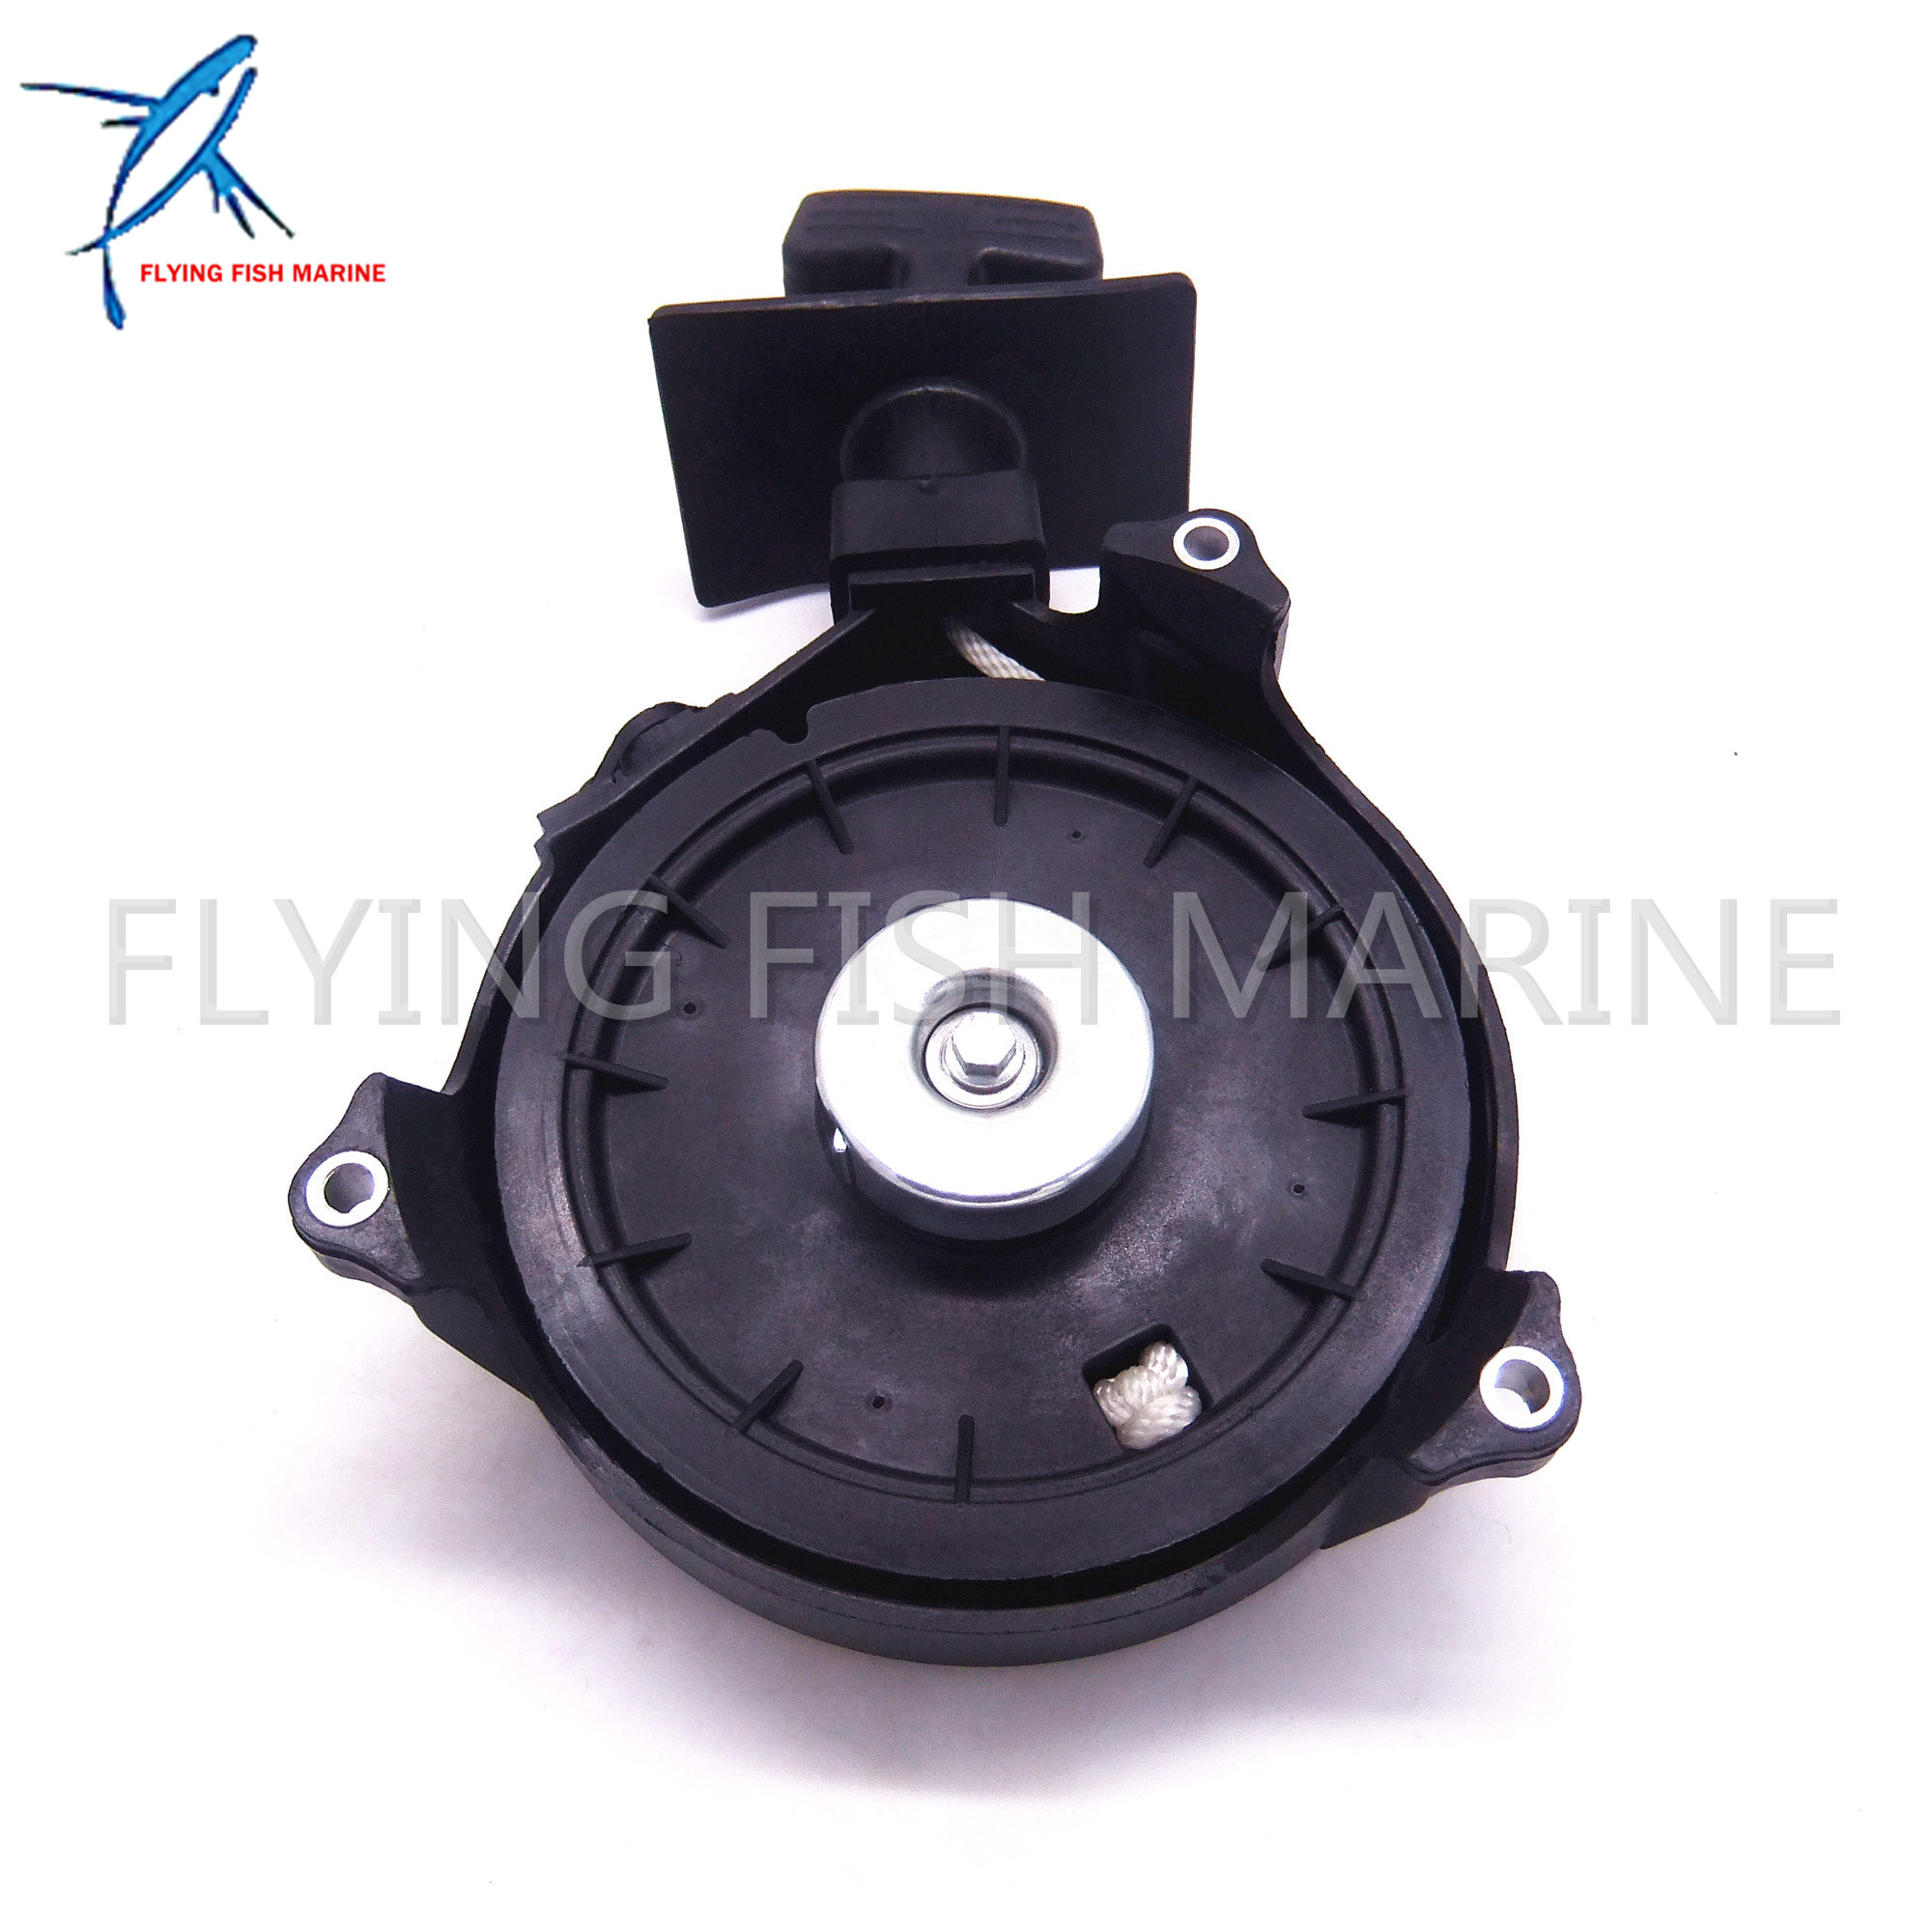 Outboard Engine 3R1-05090-0 3R1050900M 3AS-05090-0 3AS050900M 3GR-05090-1 3GR050901M Recoil Starter Assy For Tohatsu Nissan Boat